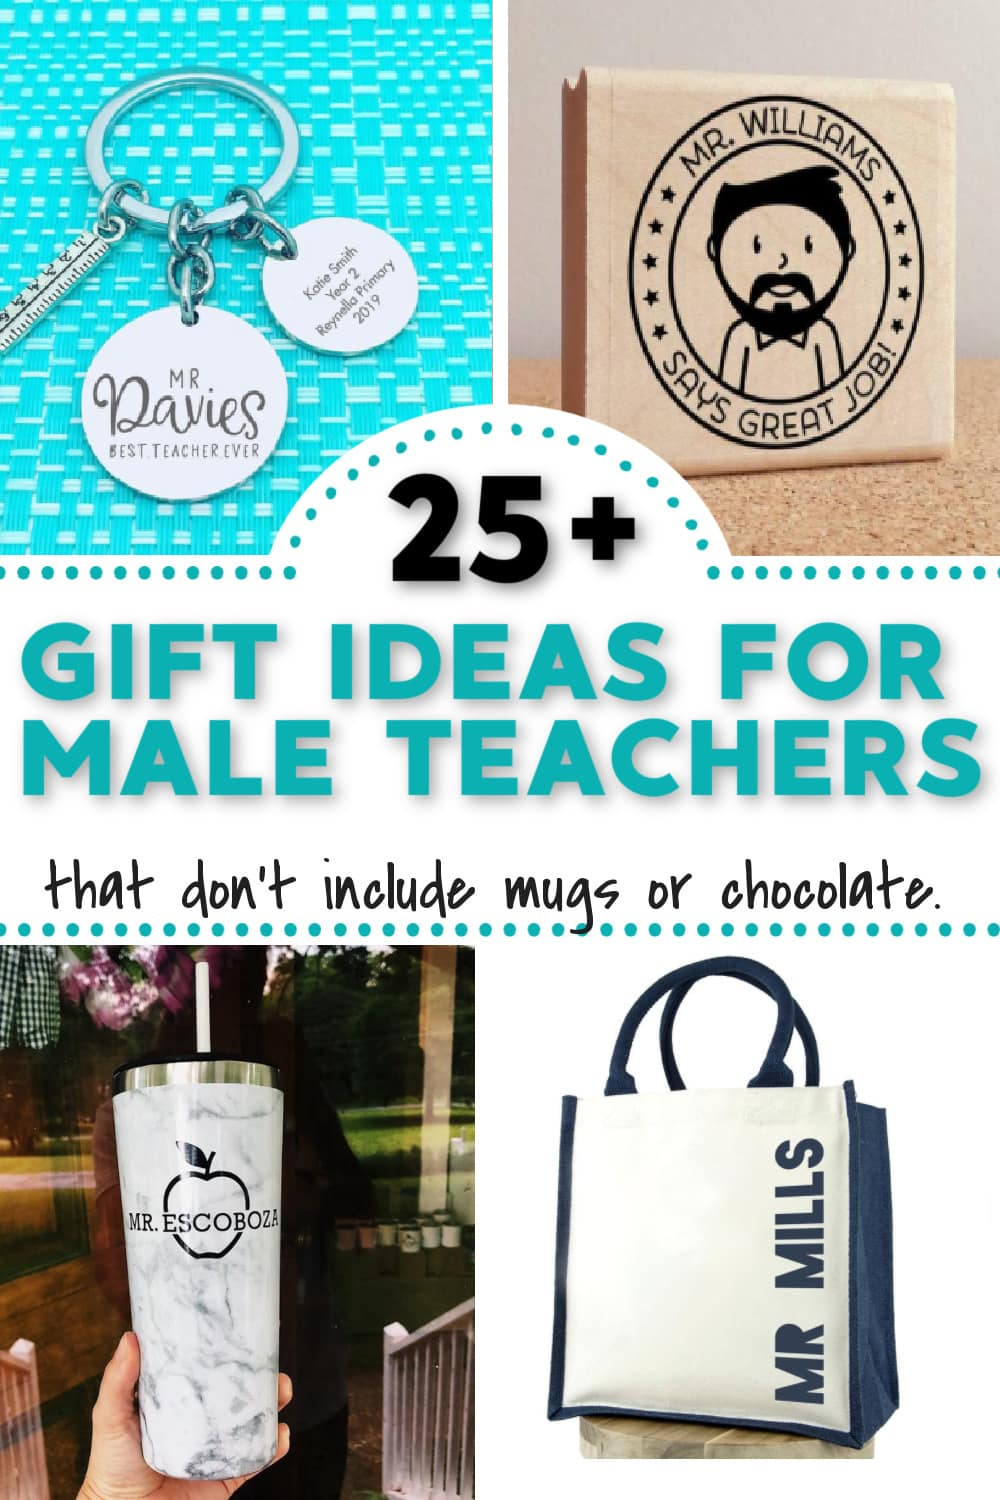 Gift ideas for male teachers from students